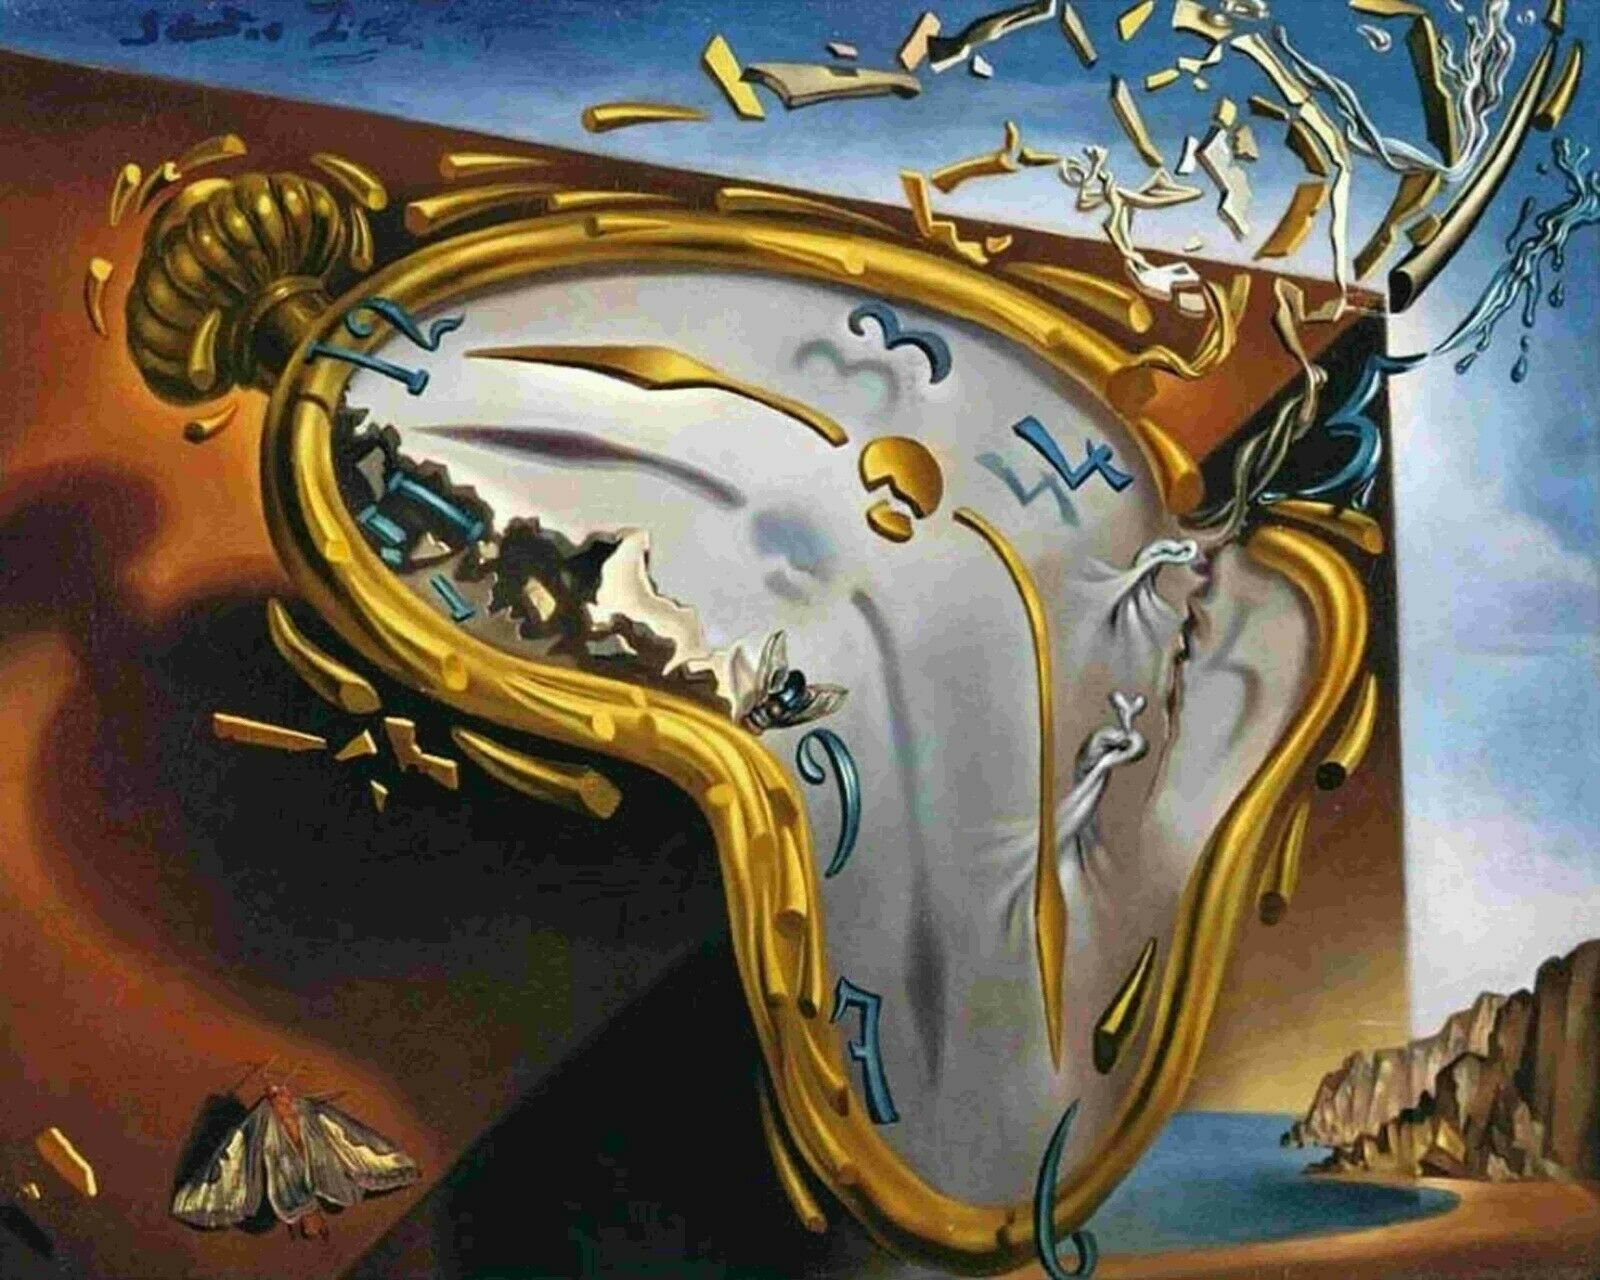 Melting Watch by Salvador Dali - Van-Go Paint-By-Number Kit | eBay